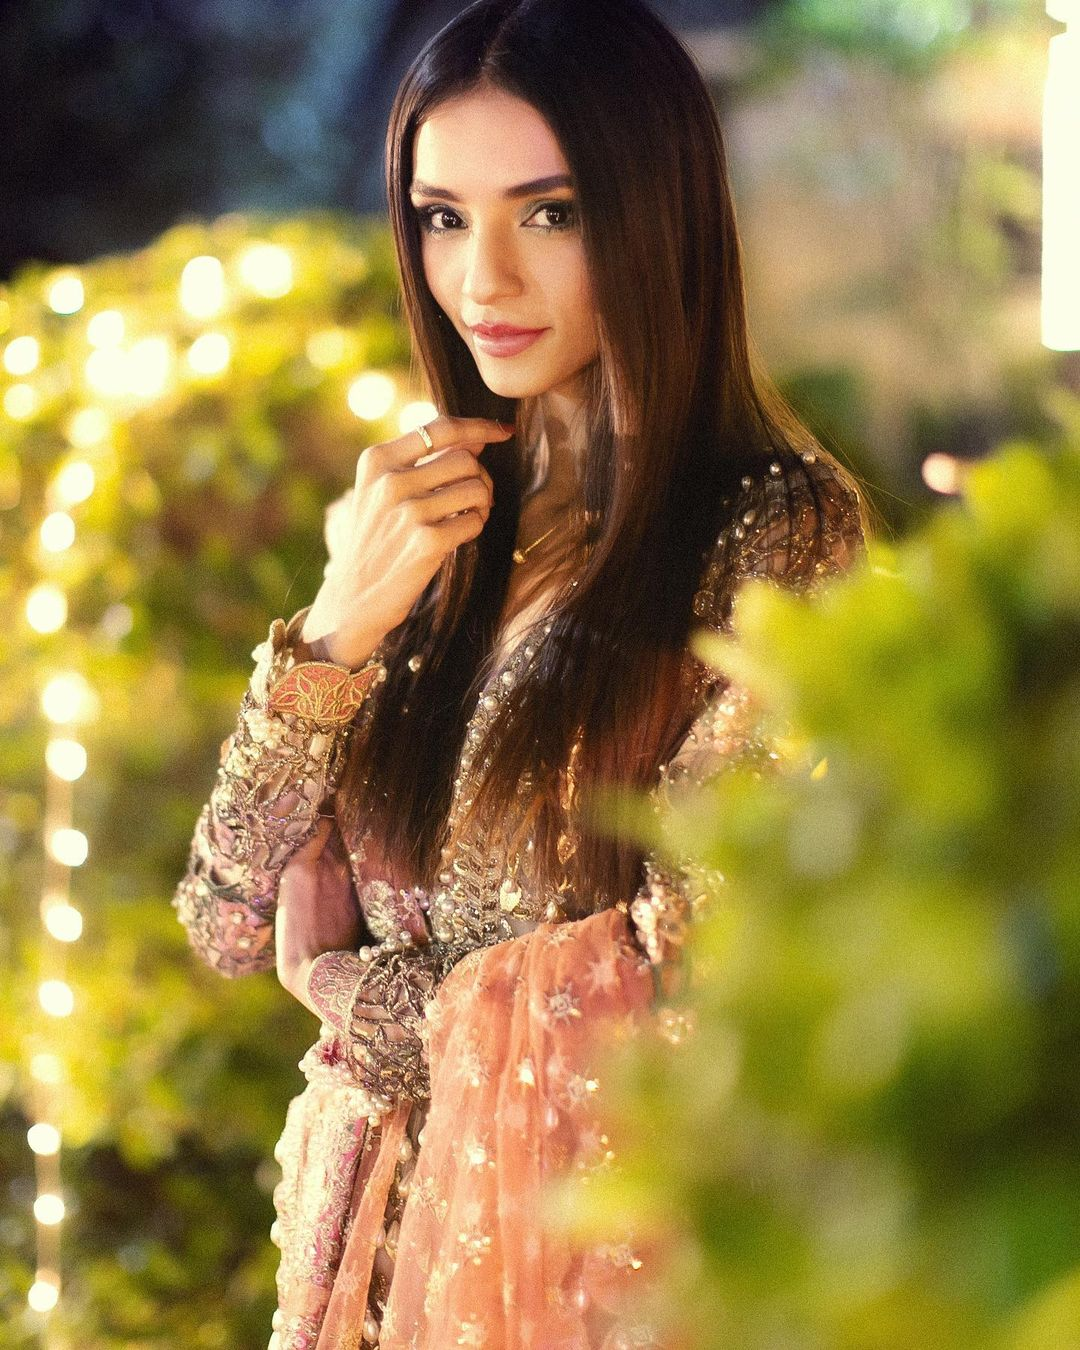 Super Model Javeriya Hanif Mayoun Look Photo Shoot